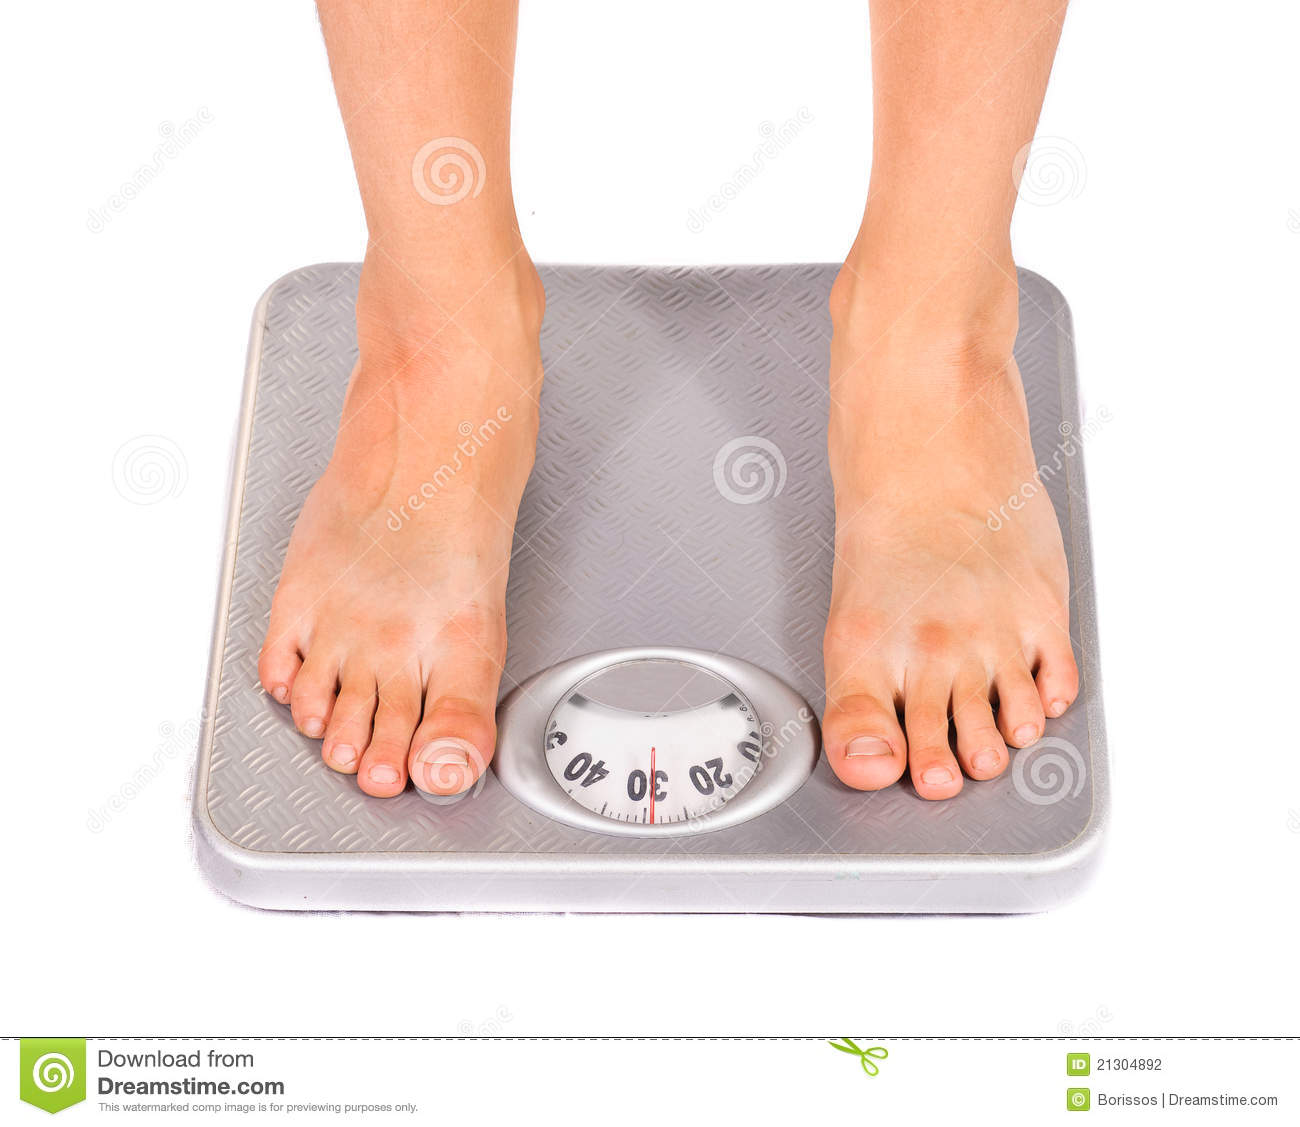 Feet on floor scales stock photo. Image of brown, health ...